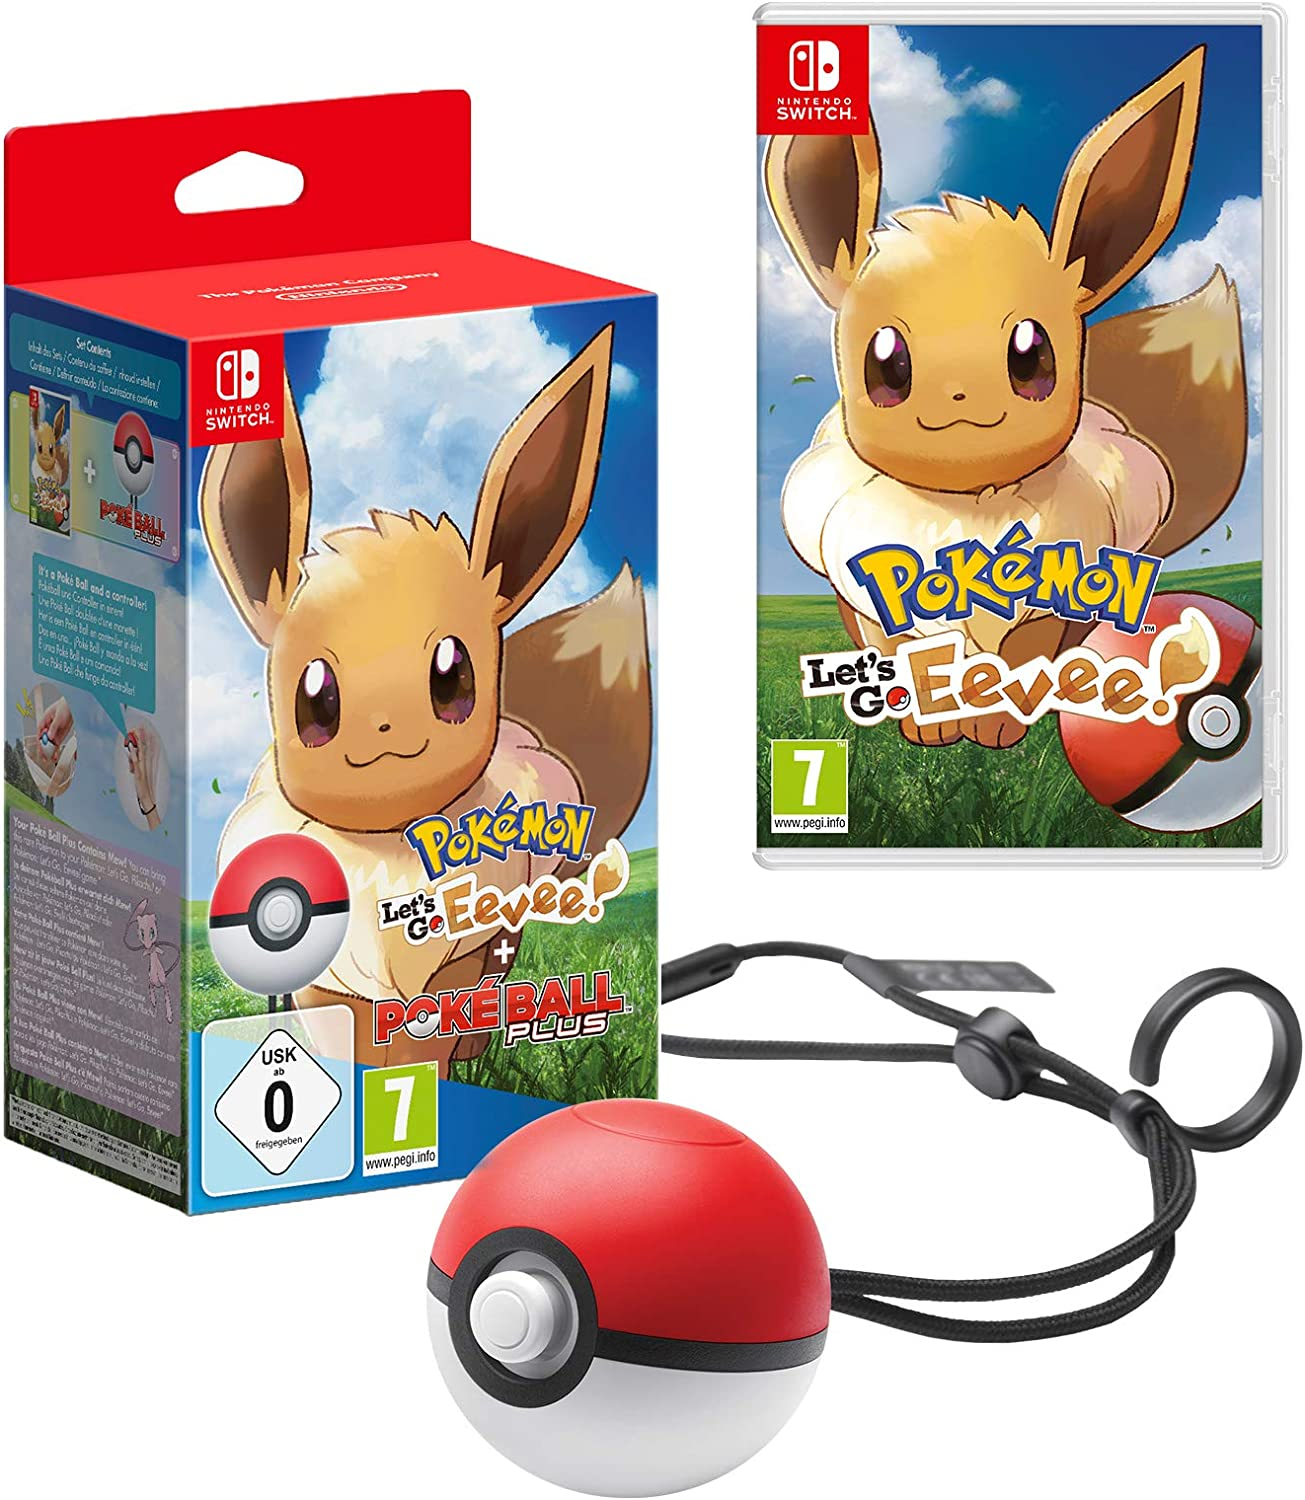 Pokémon Lets Go Eevee! + Poké Ball Plus: Amazon.es: Videojuegos